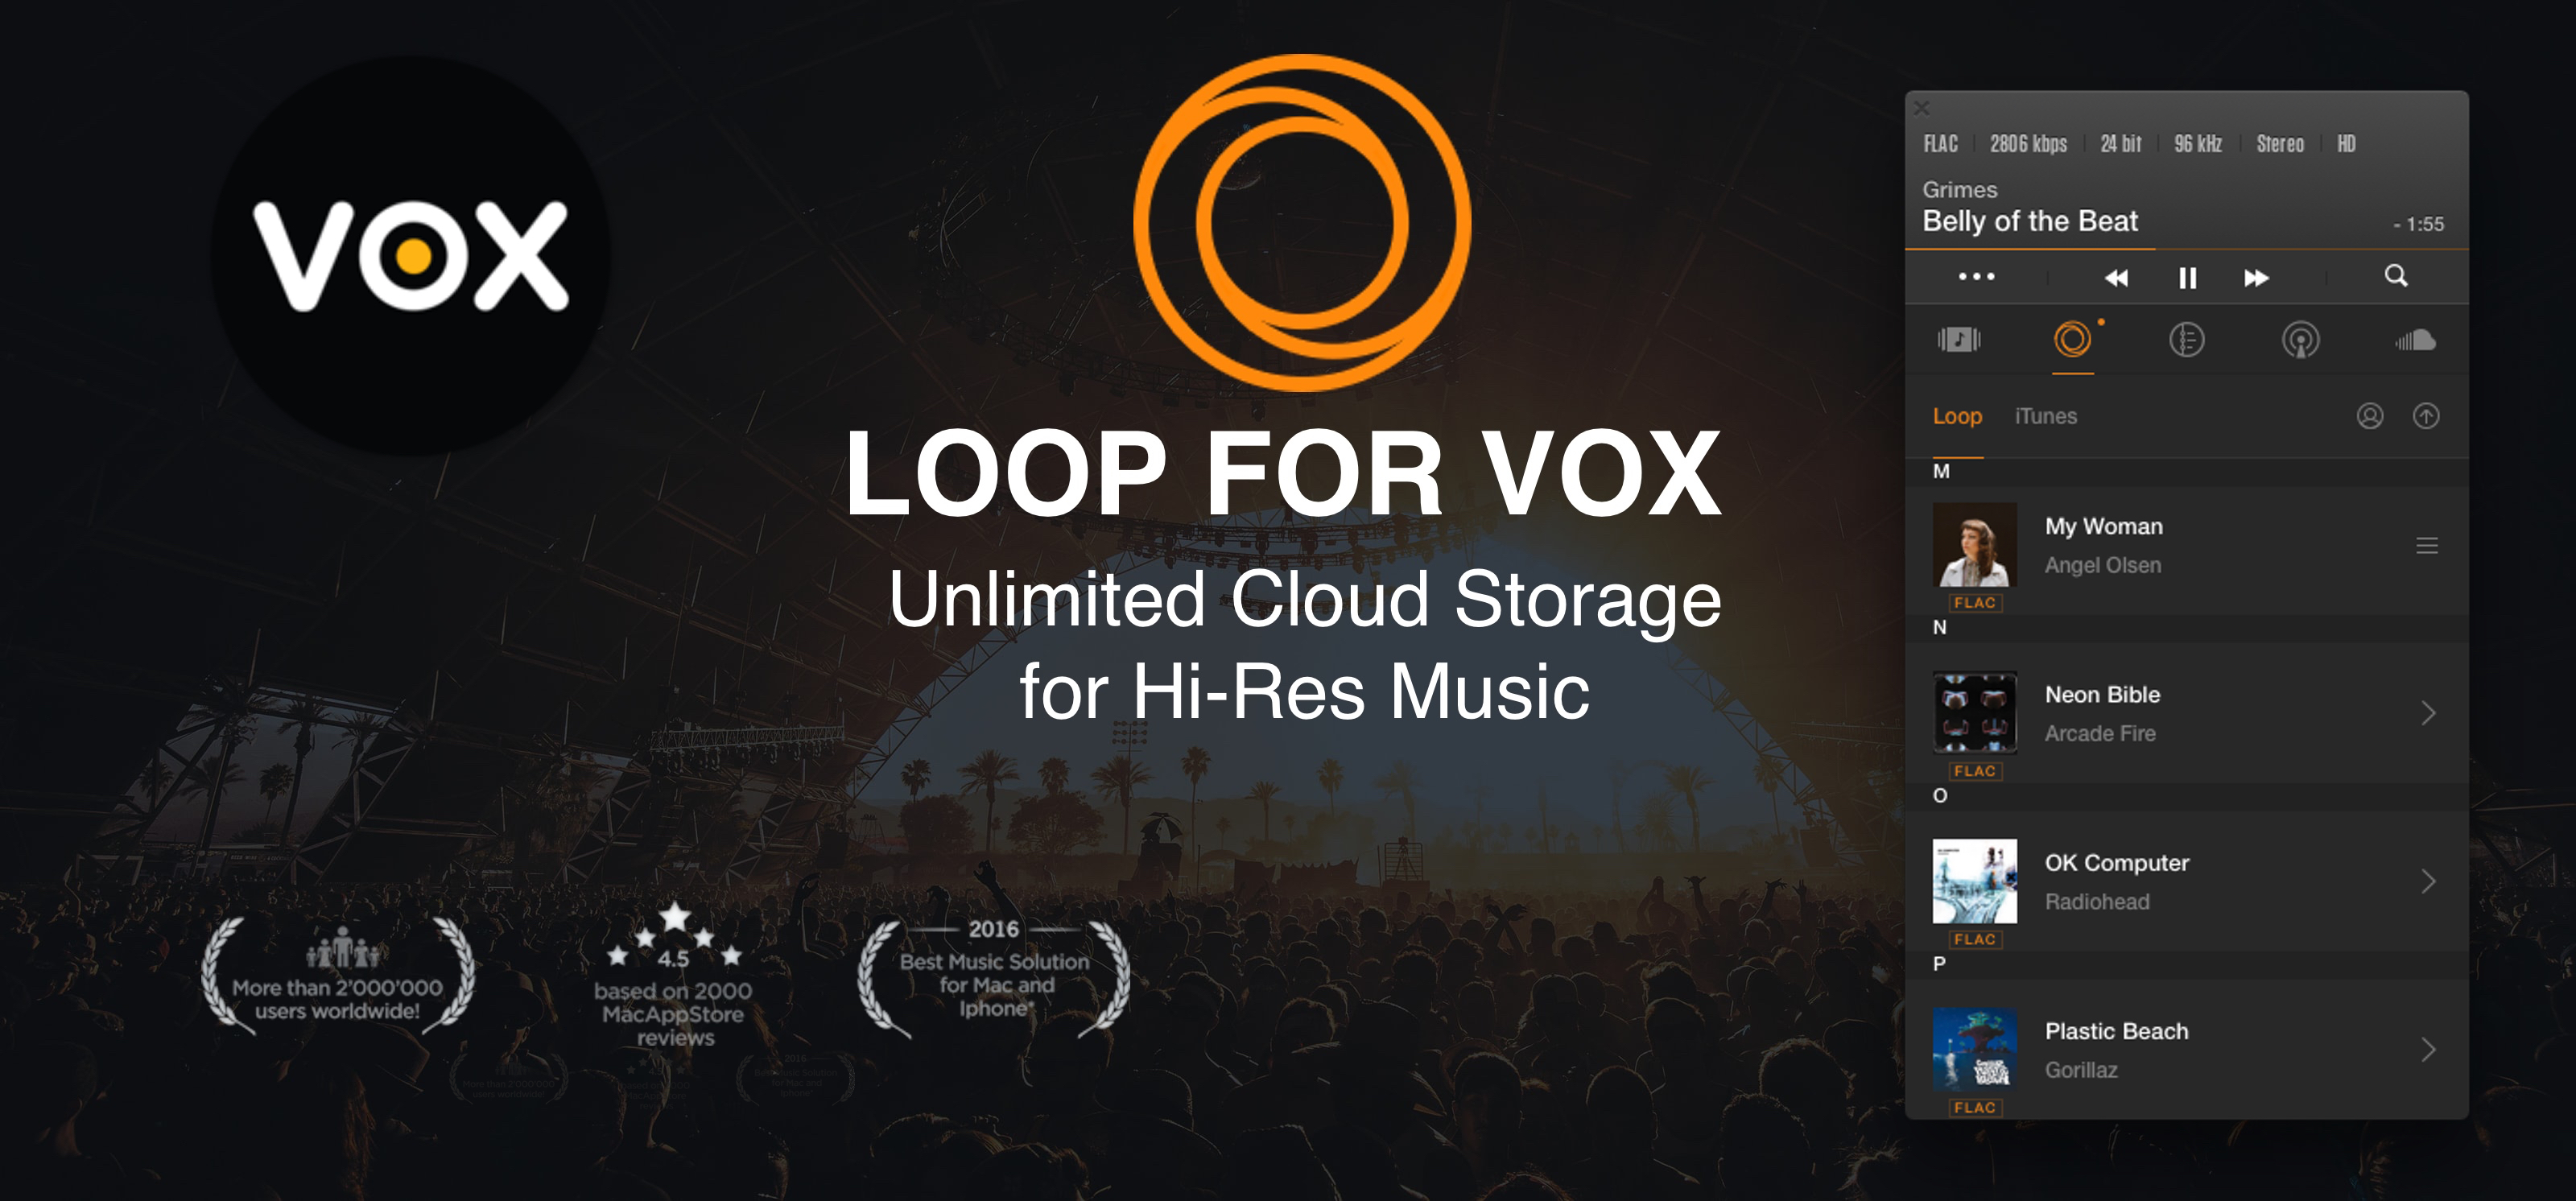 VOX High Definition Player for Mac with LOOP Music Cloud Storage logo. VOX window open on Mac